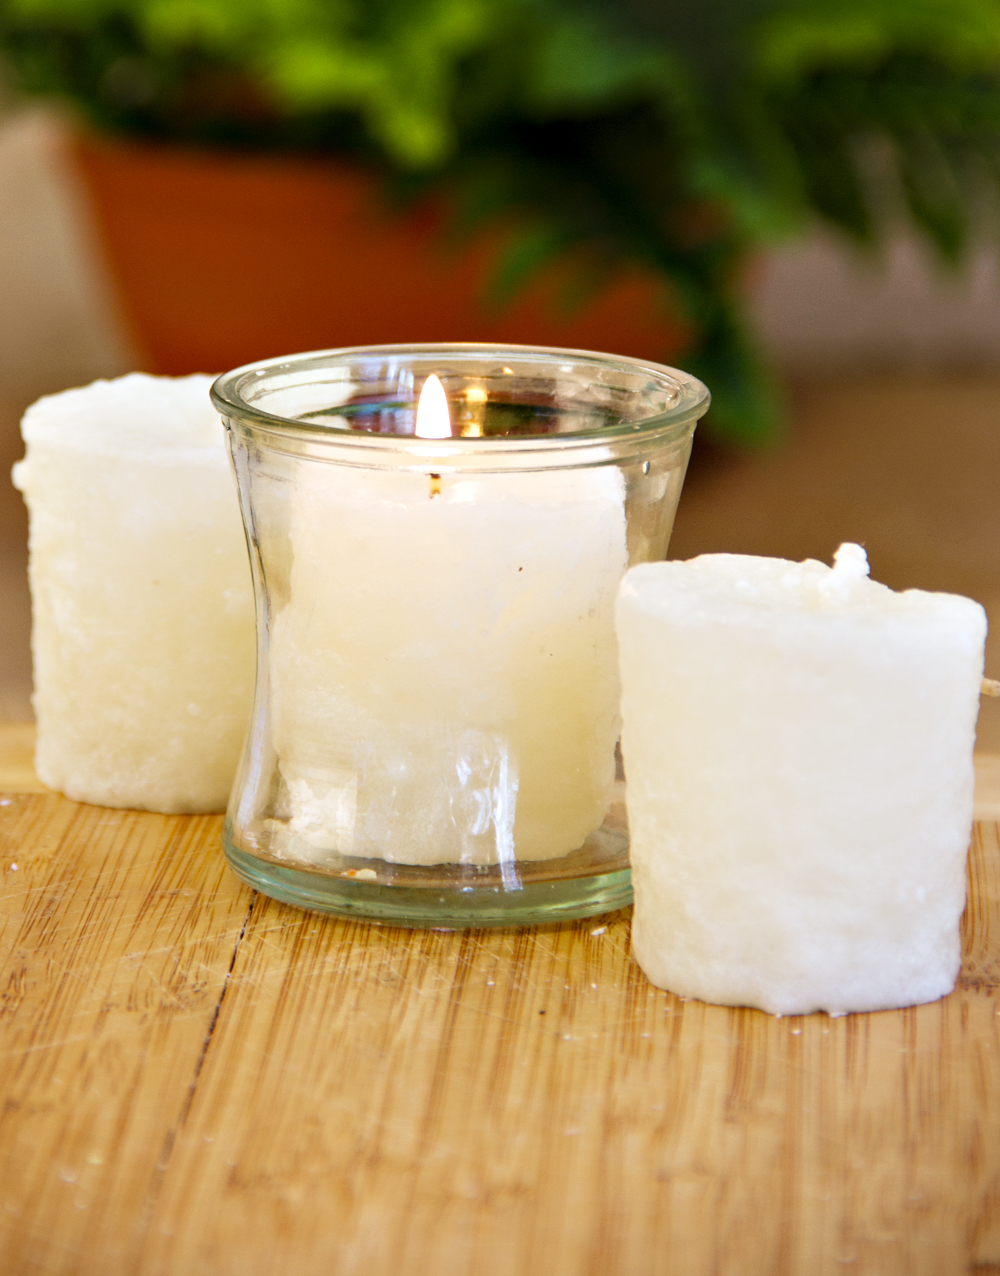 Savannah 3 Pack Votive Candles